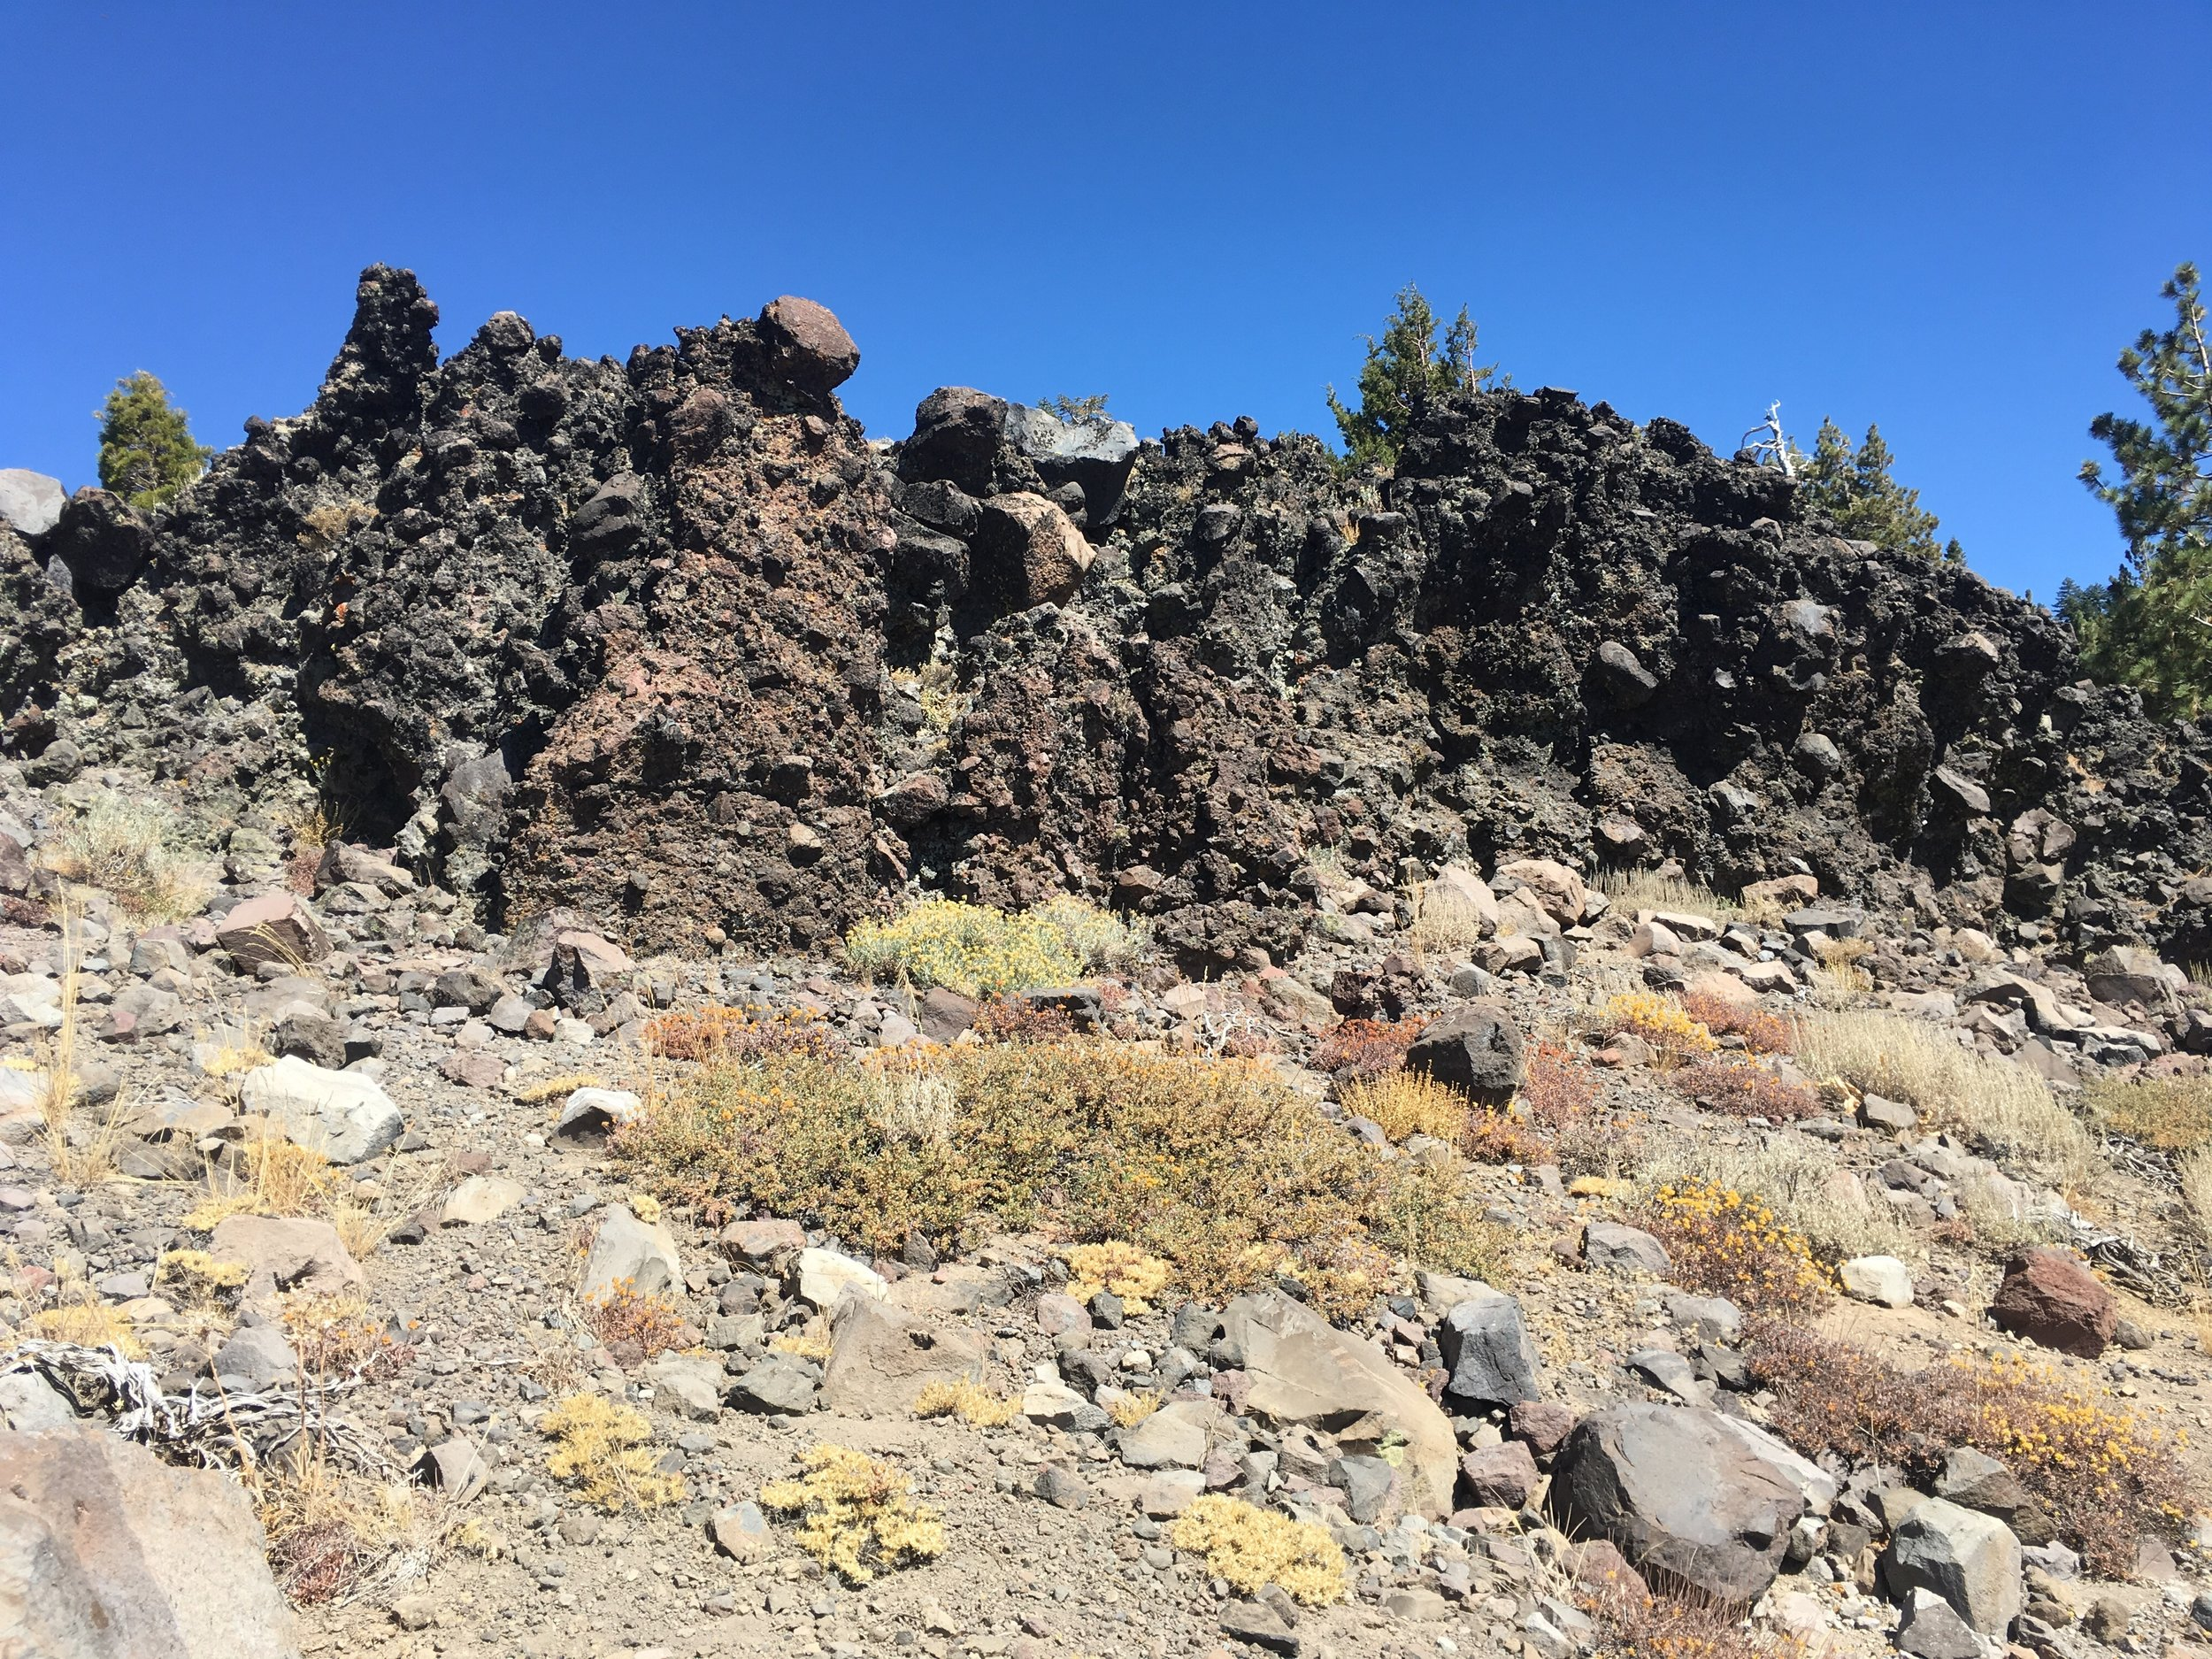 These amazing rock outcroppings kept us riveted to the ridgelines.